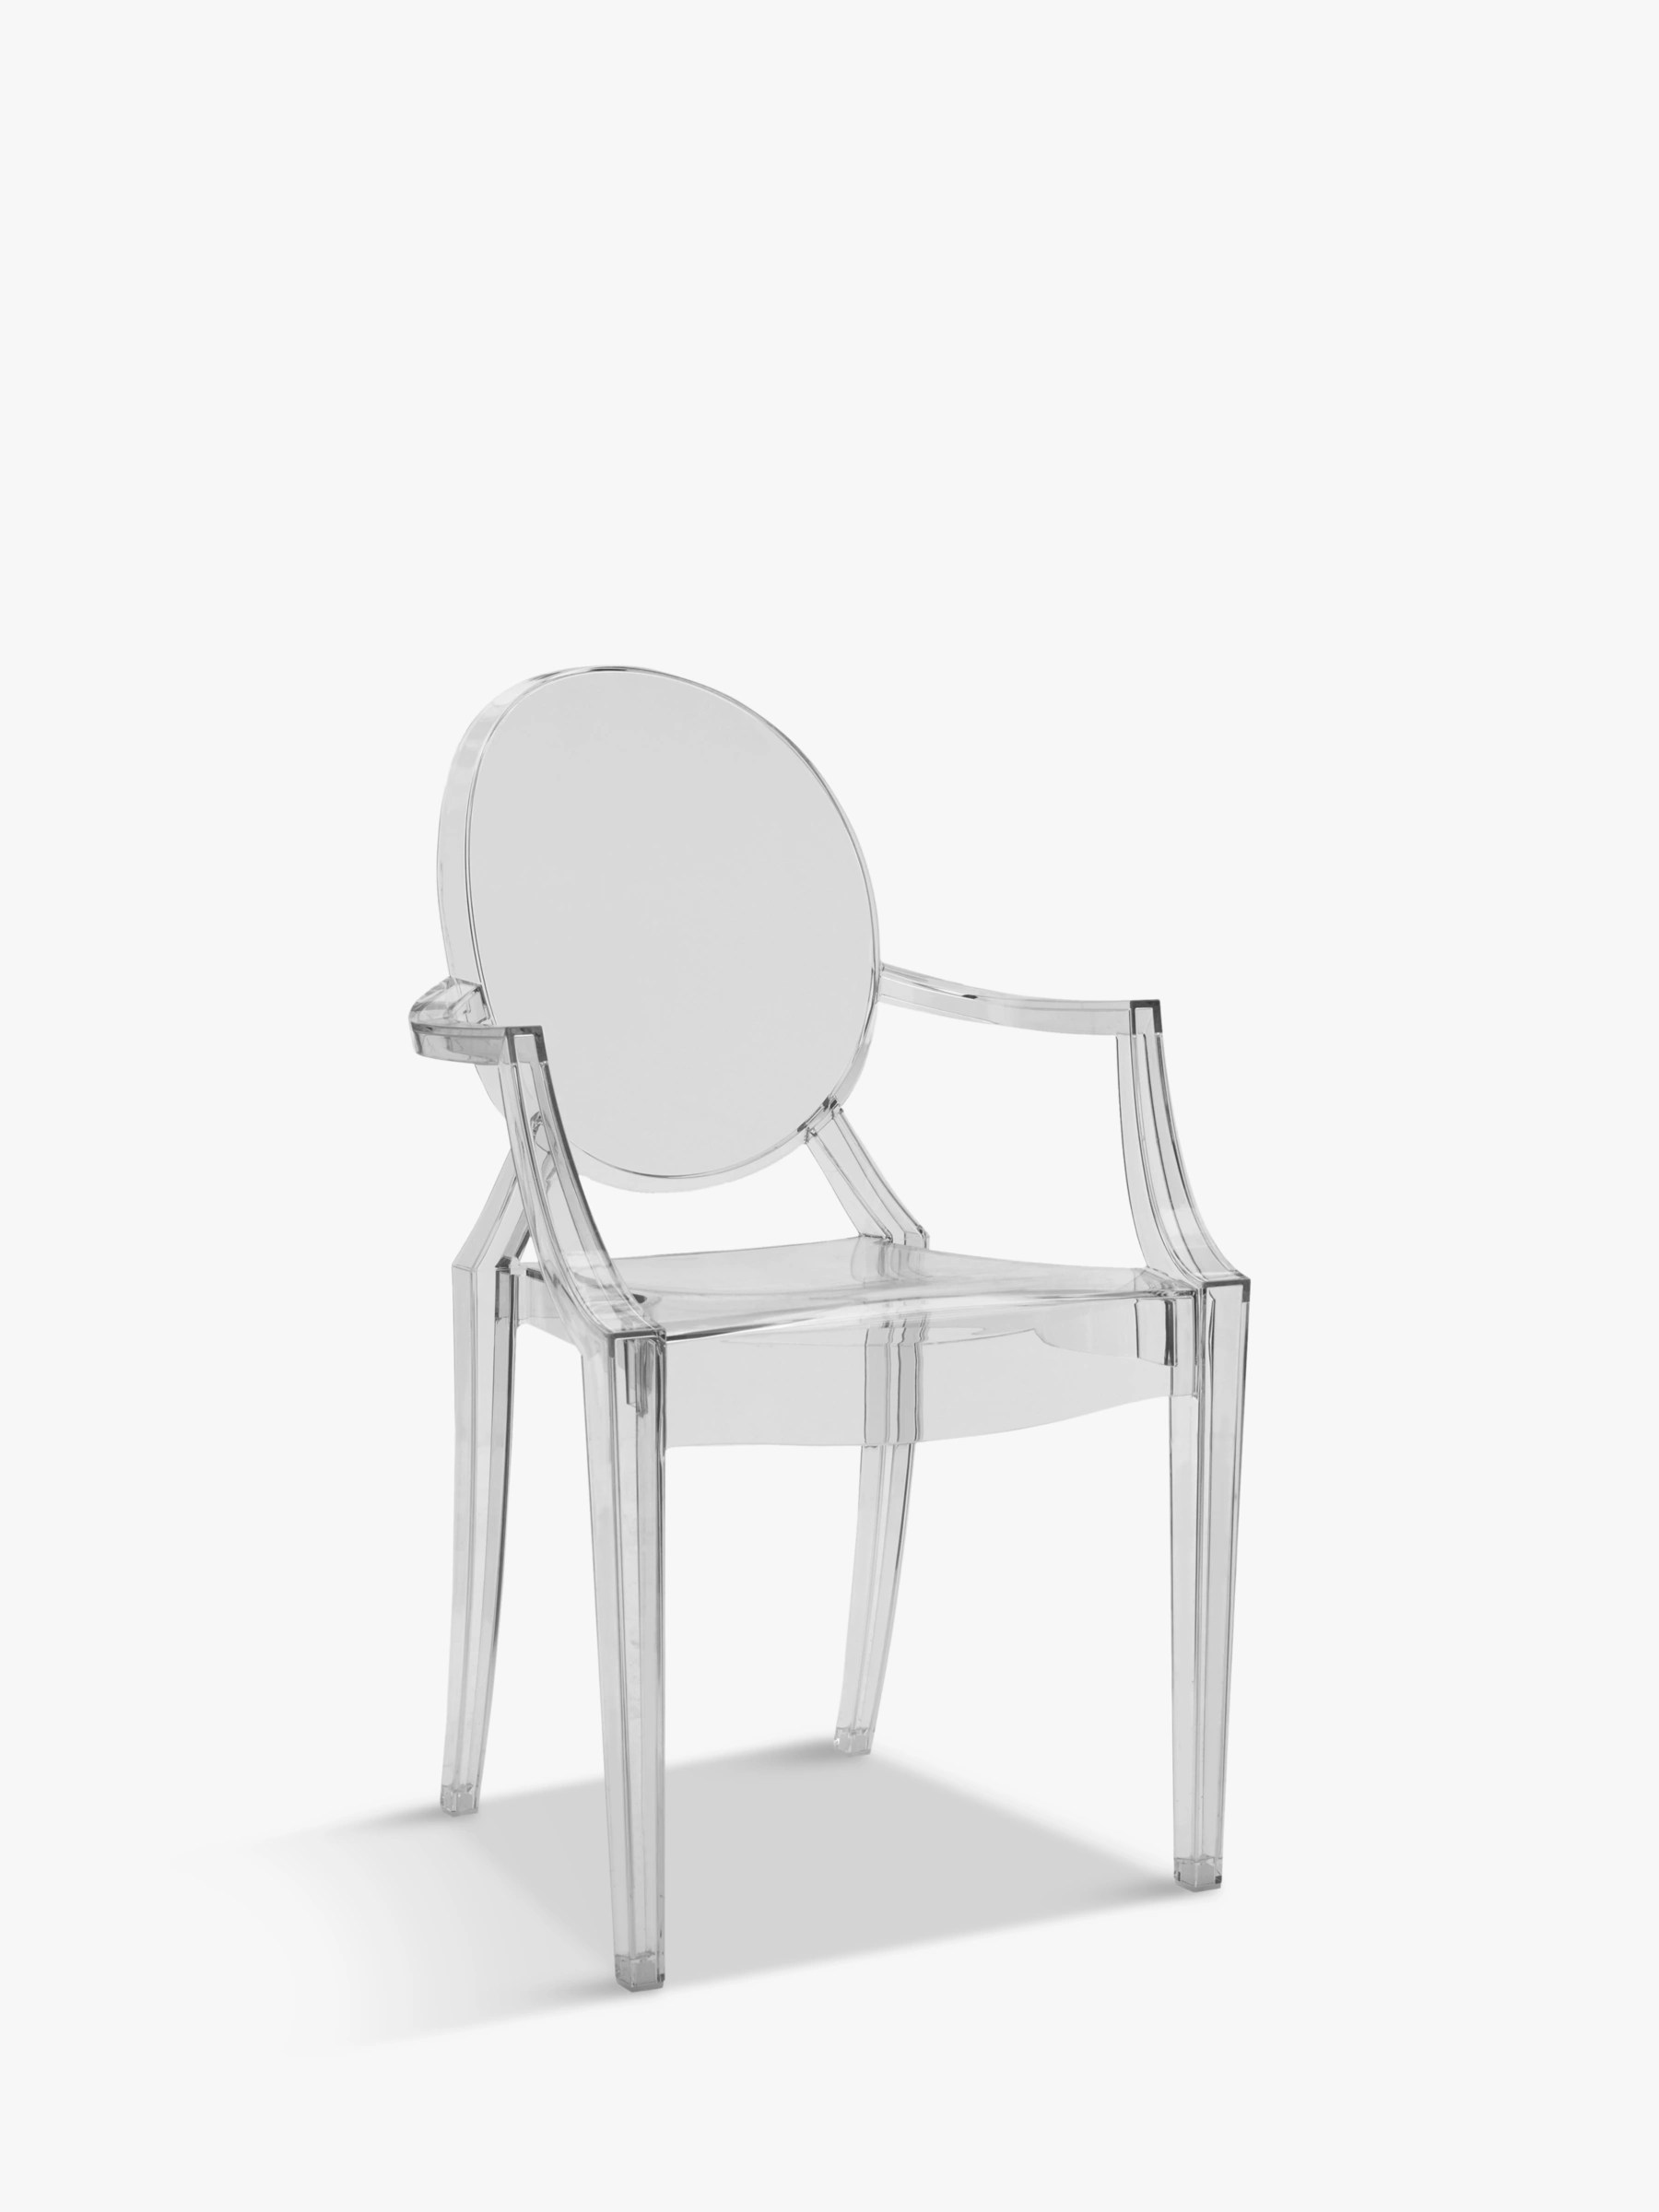 Philippe Starck for Kartell Louis Ghost Chair at John Lewis